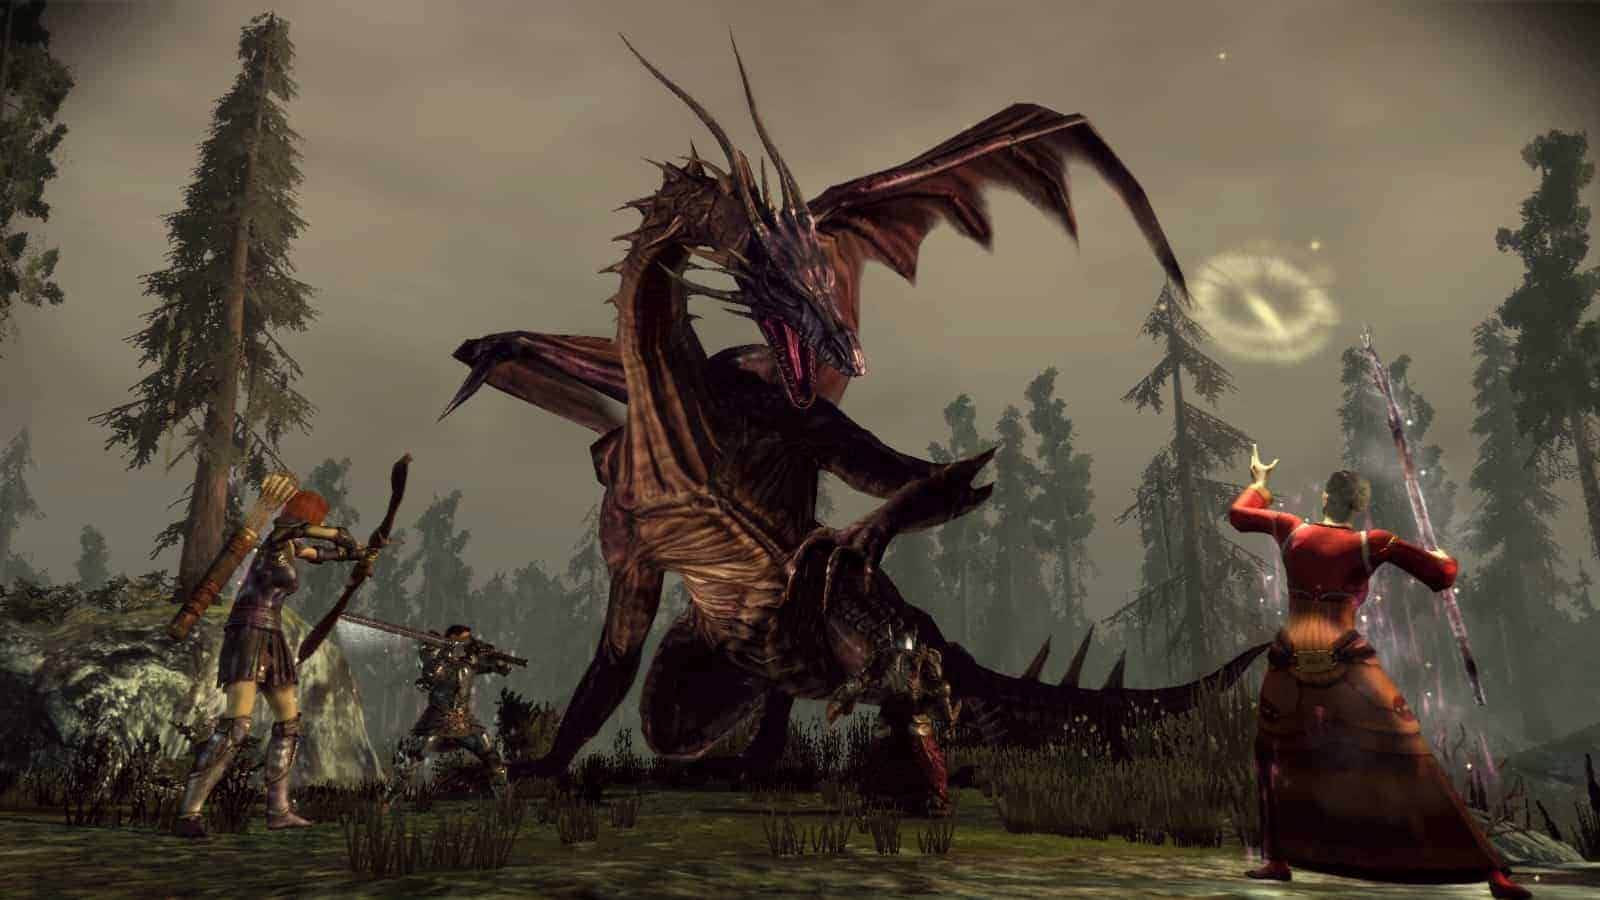 Players could even choose race, class, and place of origin in Dragon age: Origins.